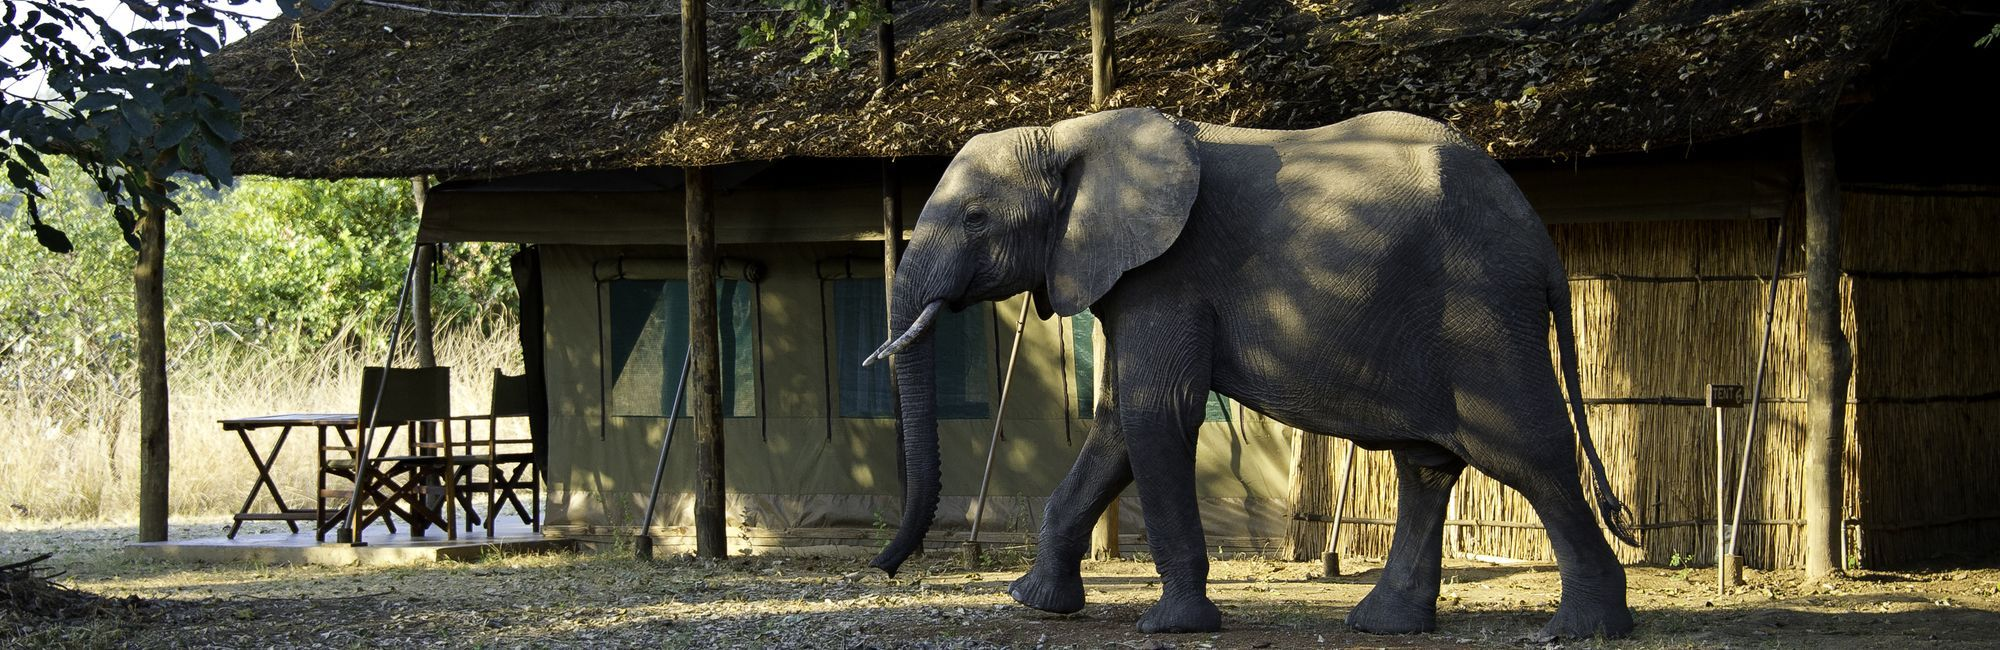 Home olifant in camp